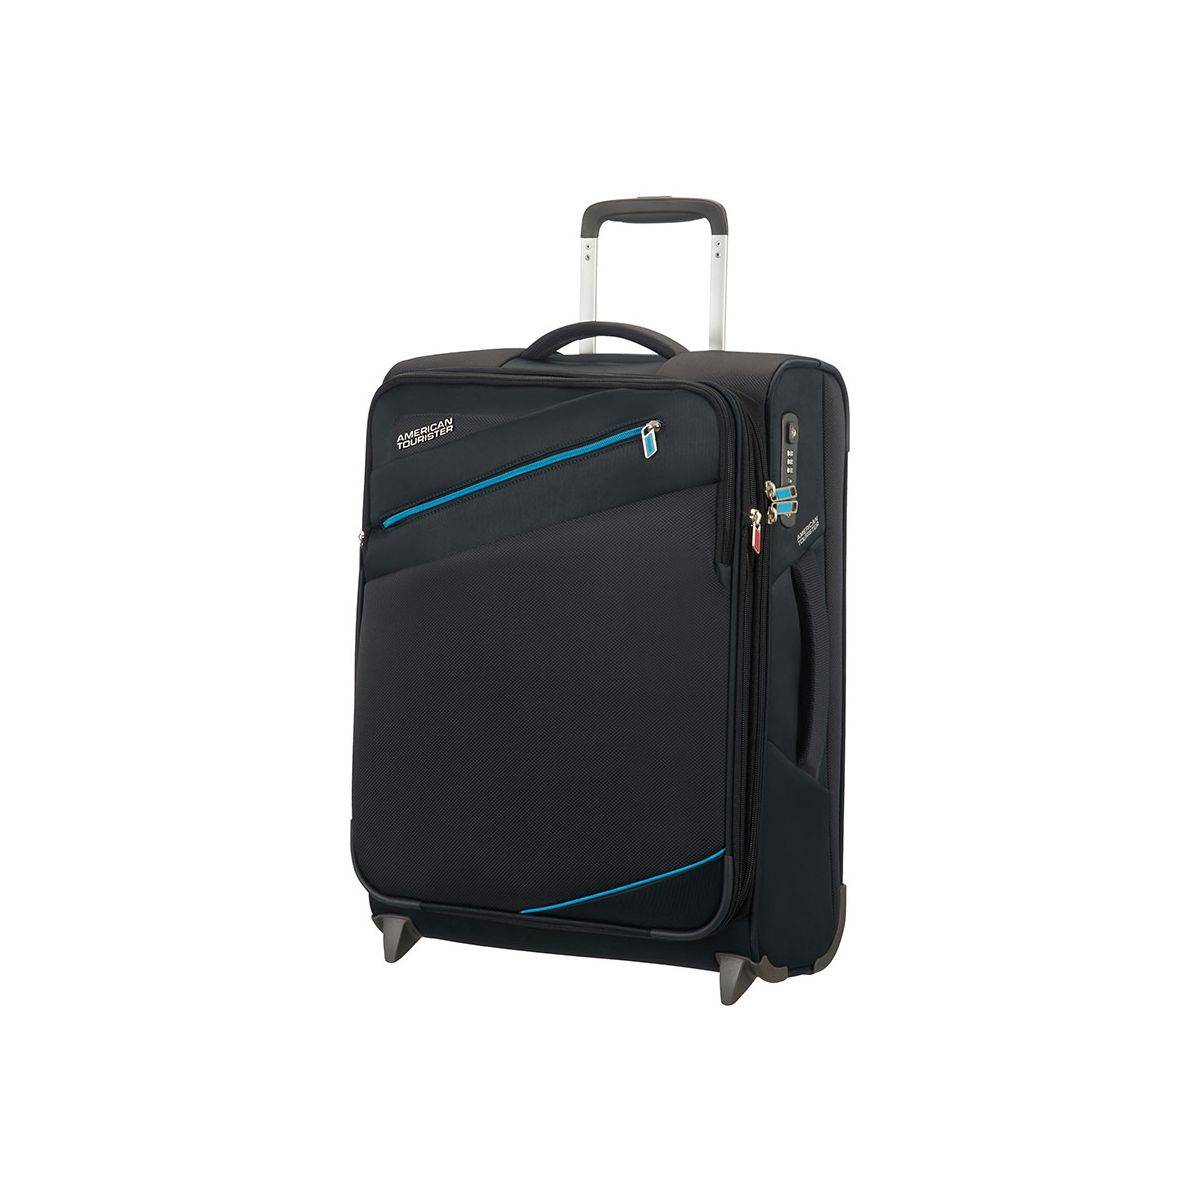 american tourister valise cabine upright s extensible mixte fermeture zipp e 74048. Black Bedroom Furniture Sets. Home Design Ideas